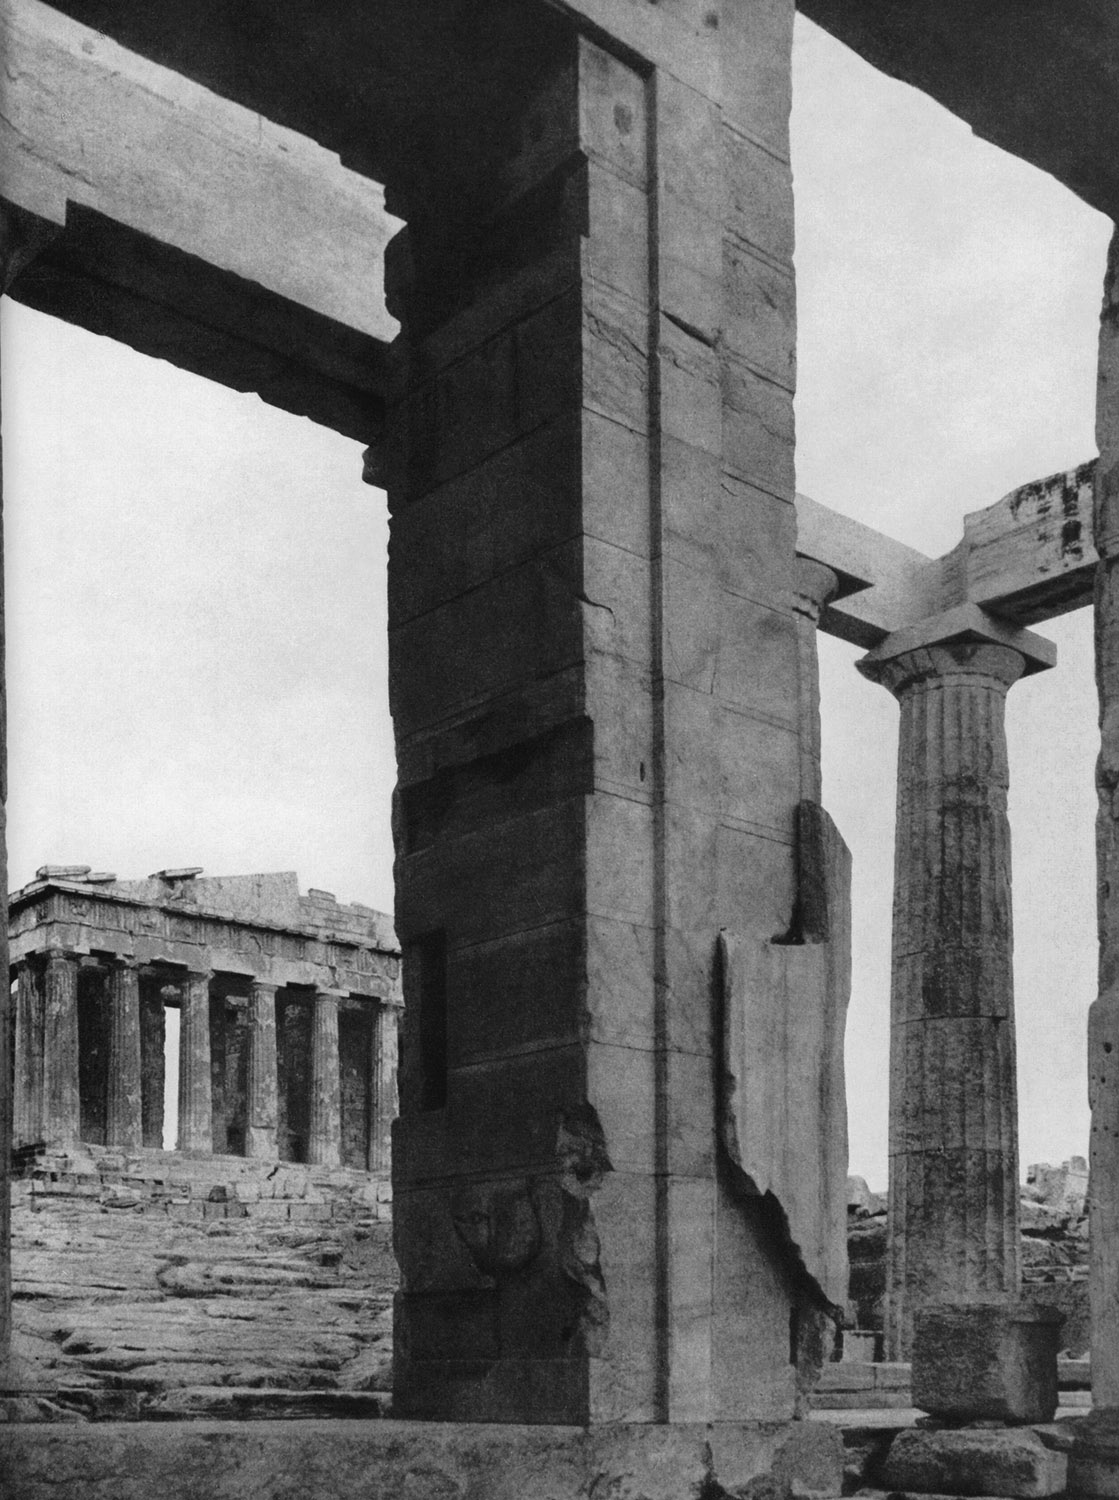 View of the Parthenon through the Propylaea. 447—438 BCE. Athens